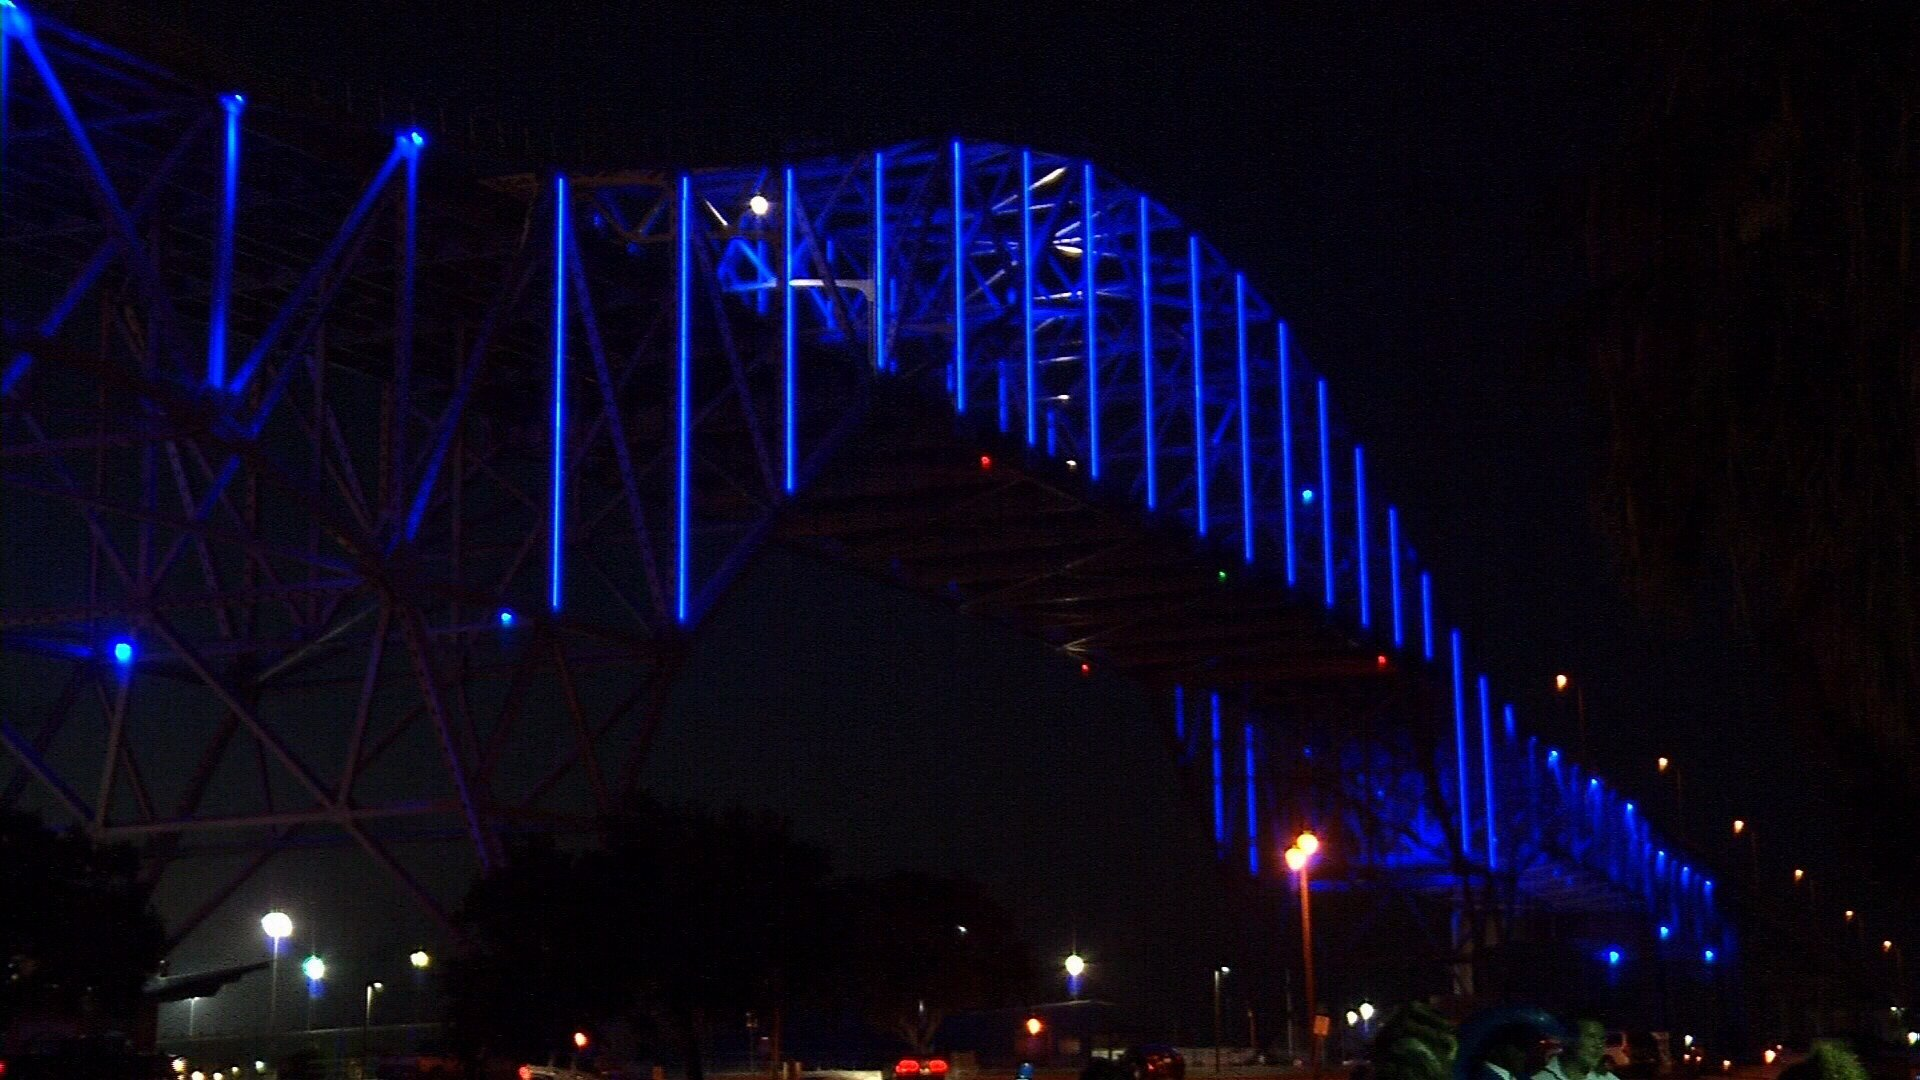 Work on the Harbor Bridge continues, and that could impact your commute.